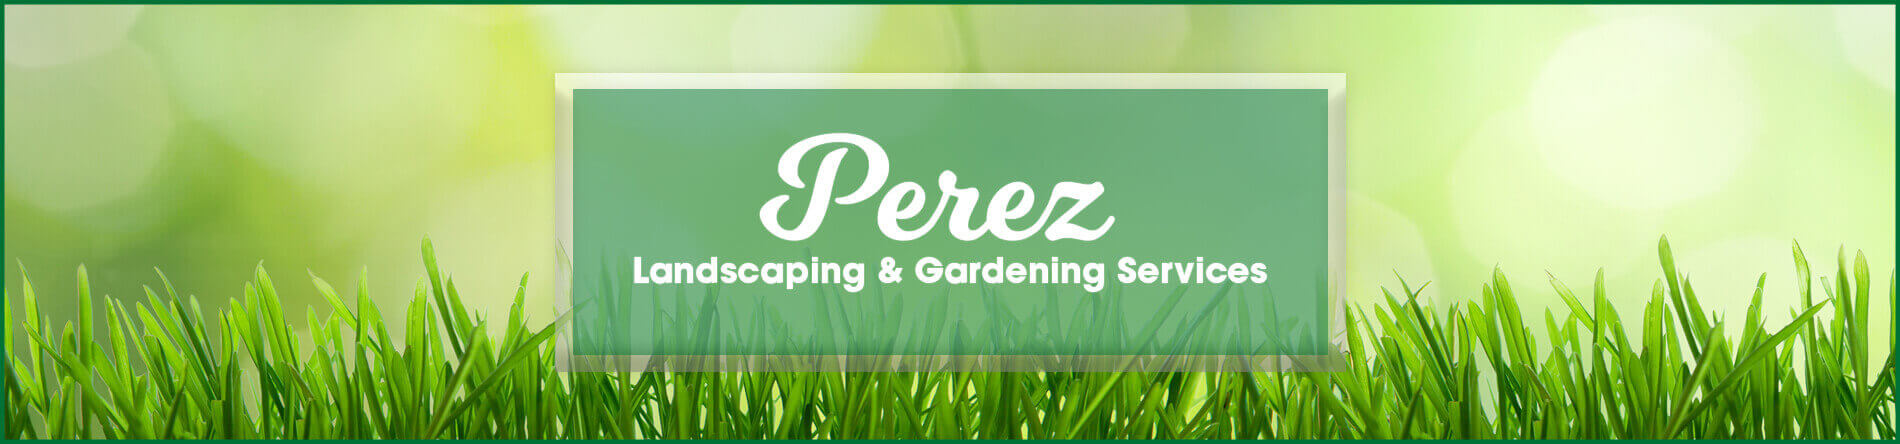 Perez Landscaping & Gardening Services is a Landscaping Company in Oakland, CA